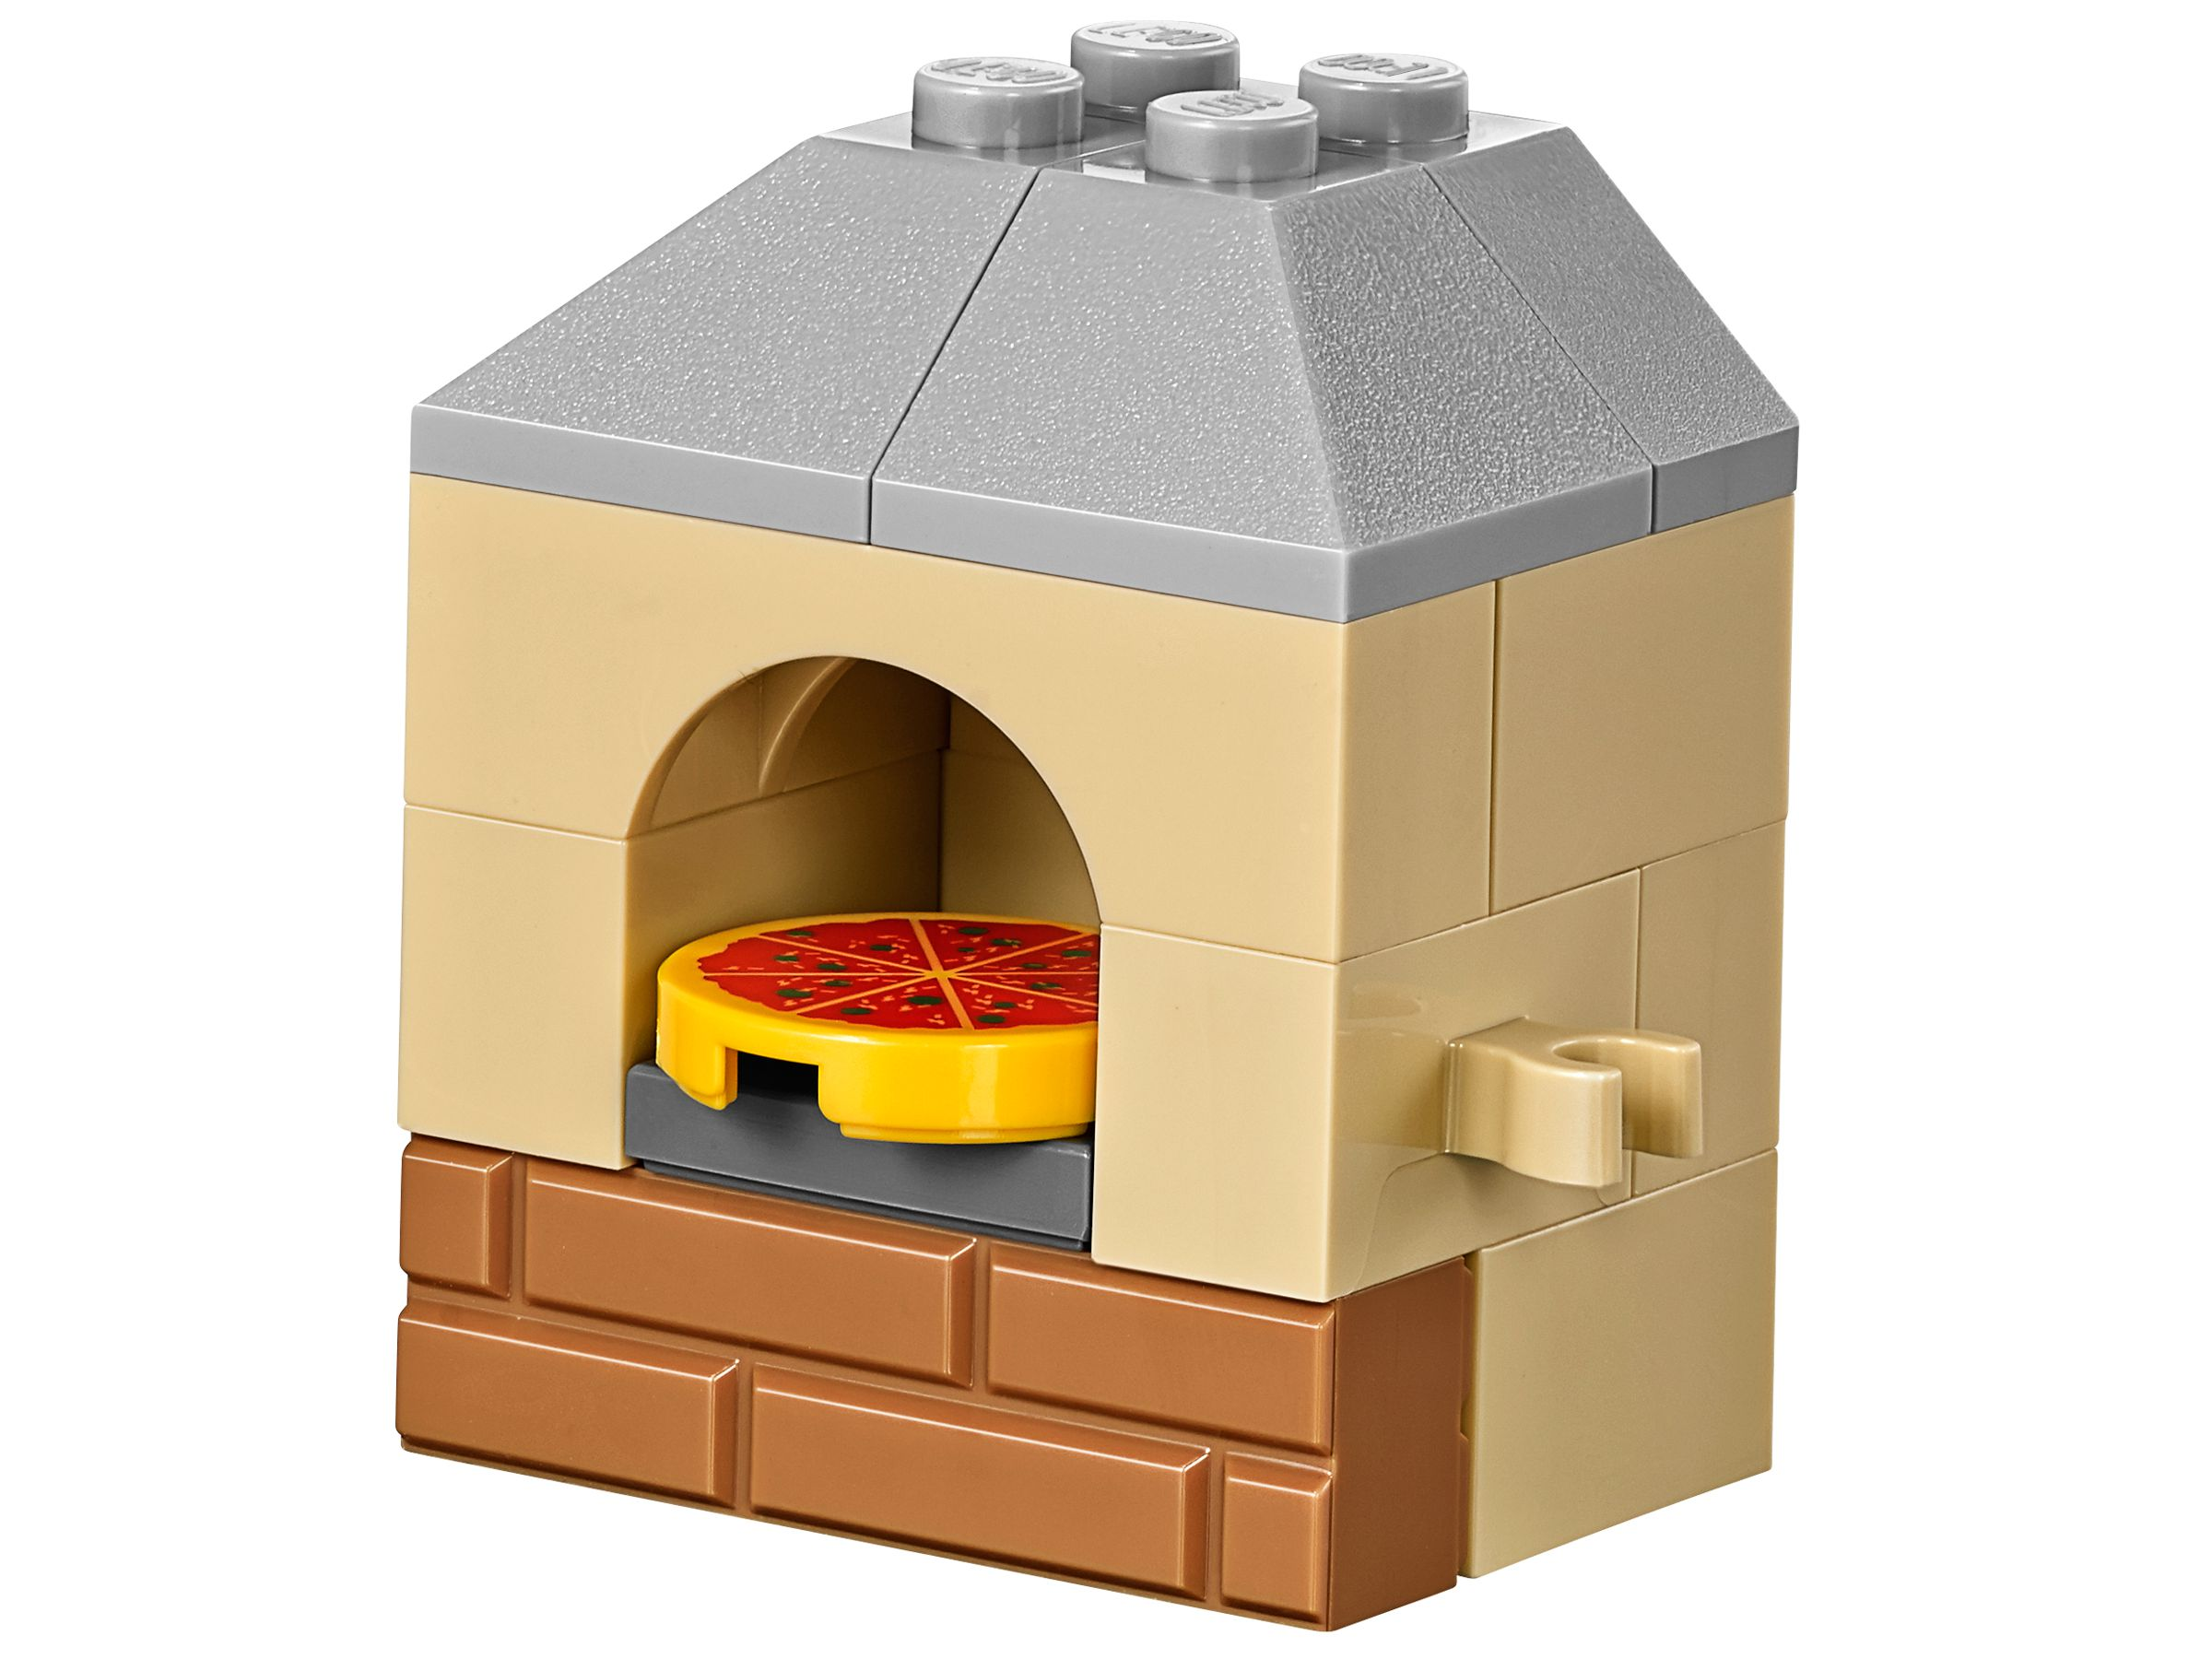 LEGO Friends 41092 Stephanies Pizzeria LEGO_41092_alt3.jpg